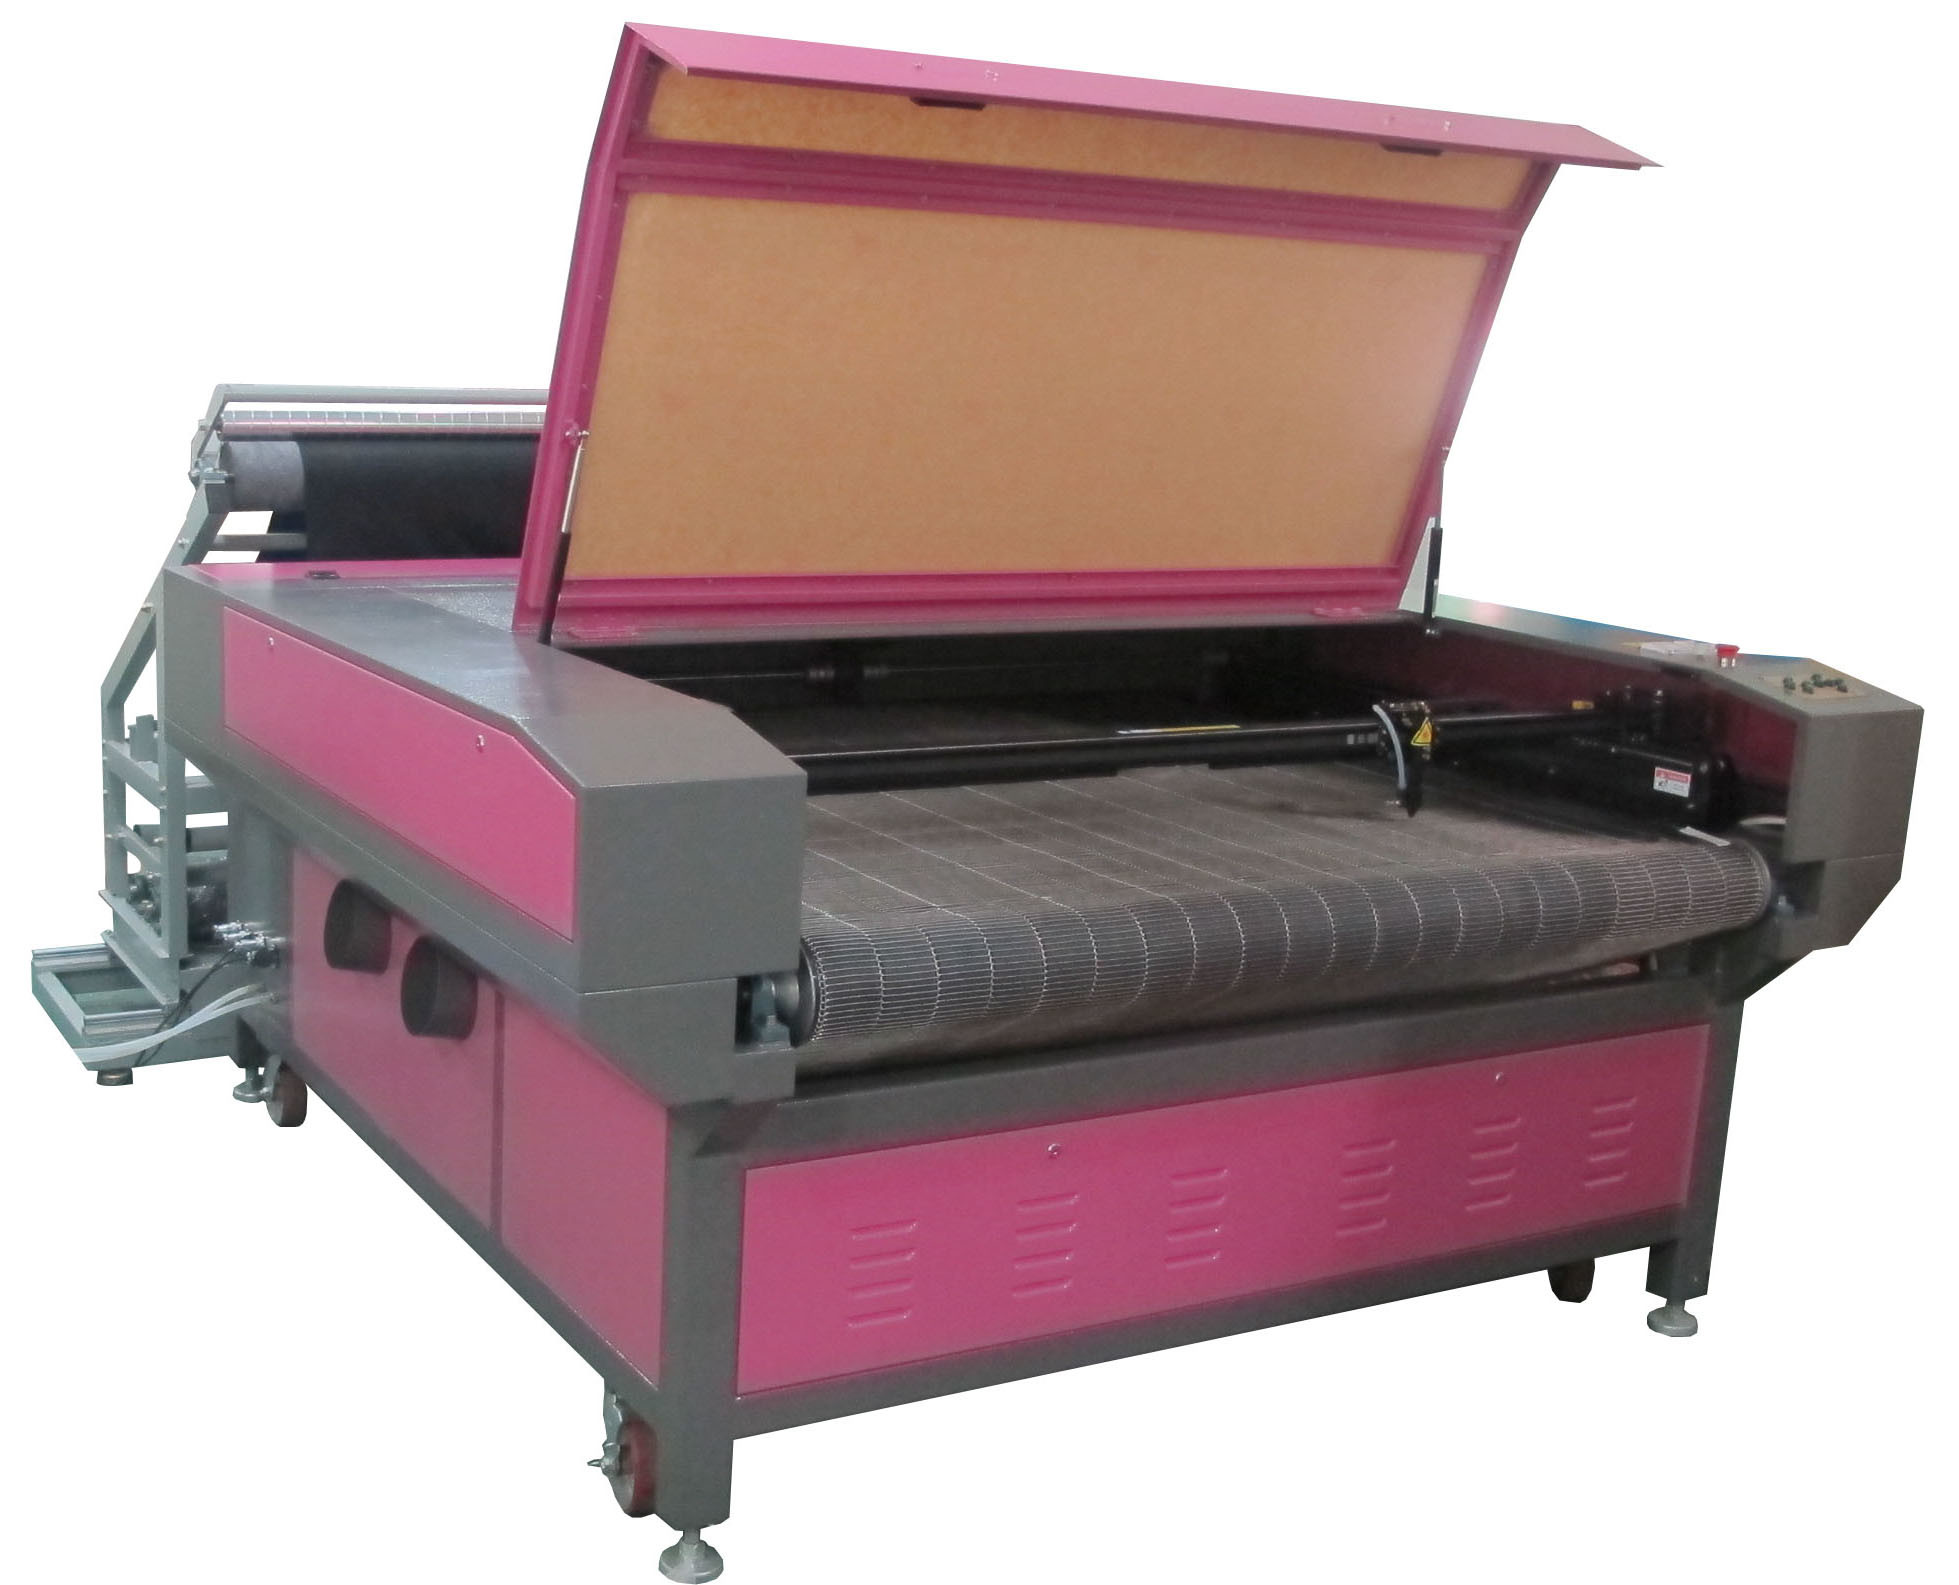 Fabric Auto Feeding Laser Cutting and Engraving Machine 1600X1000mm Dual Heads